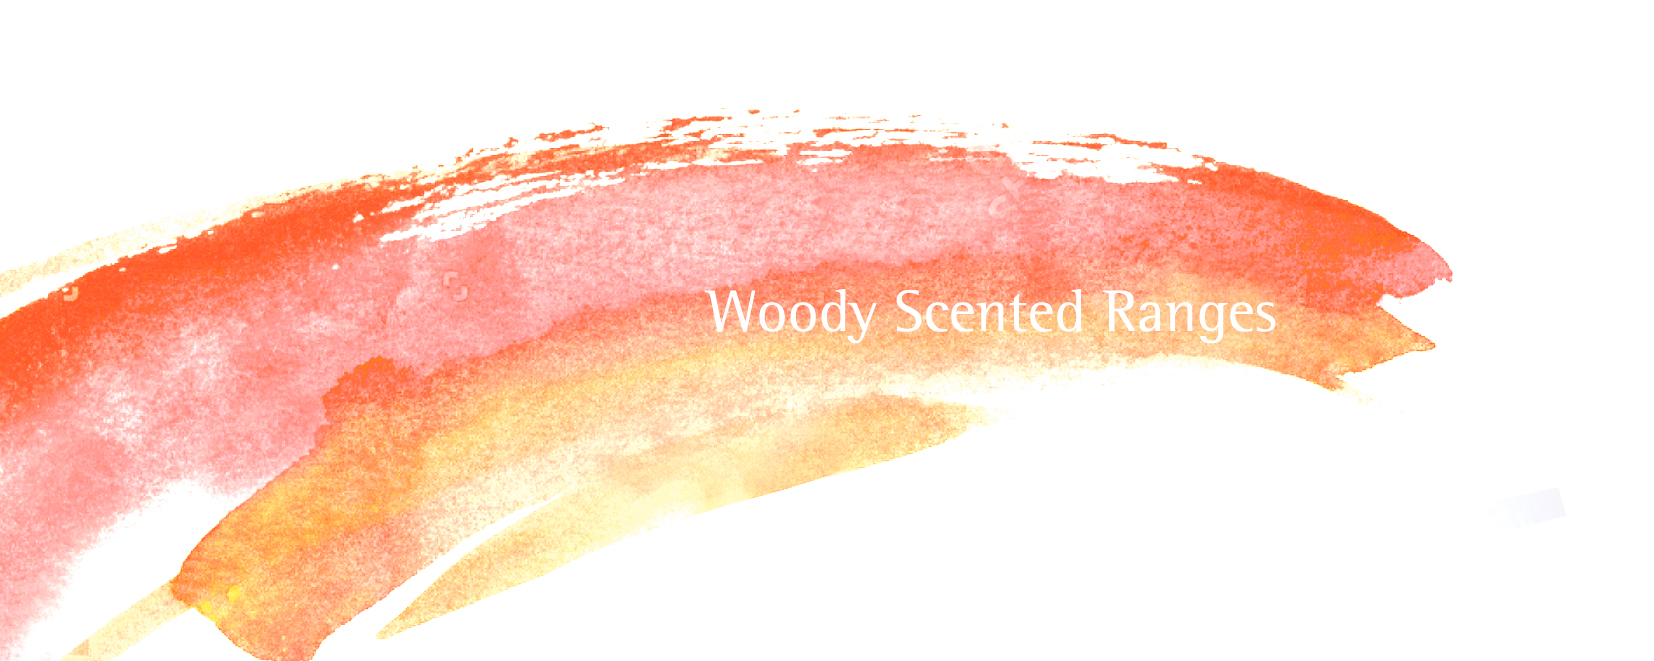 Woody scented ranges of candles and reed diffusers